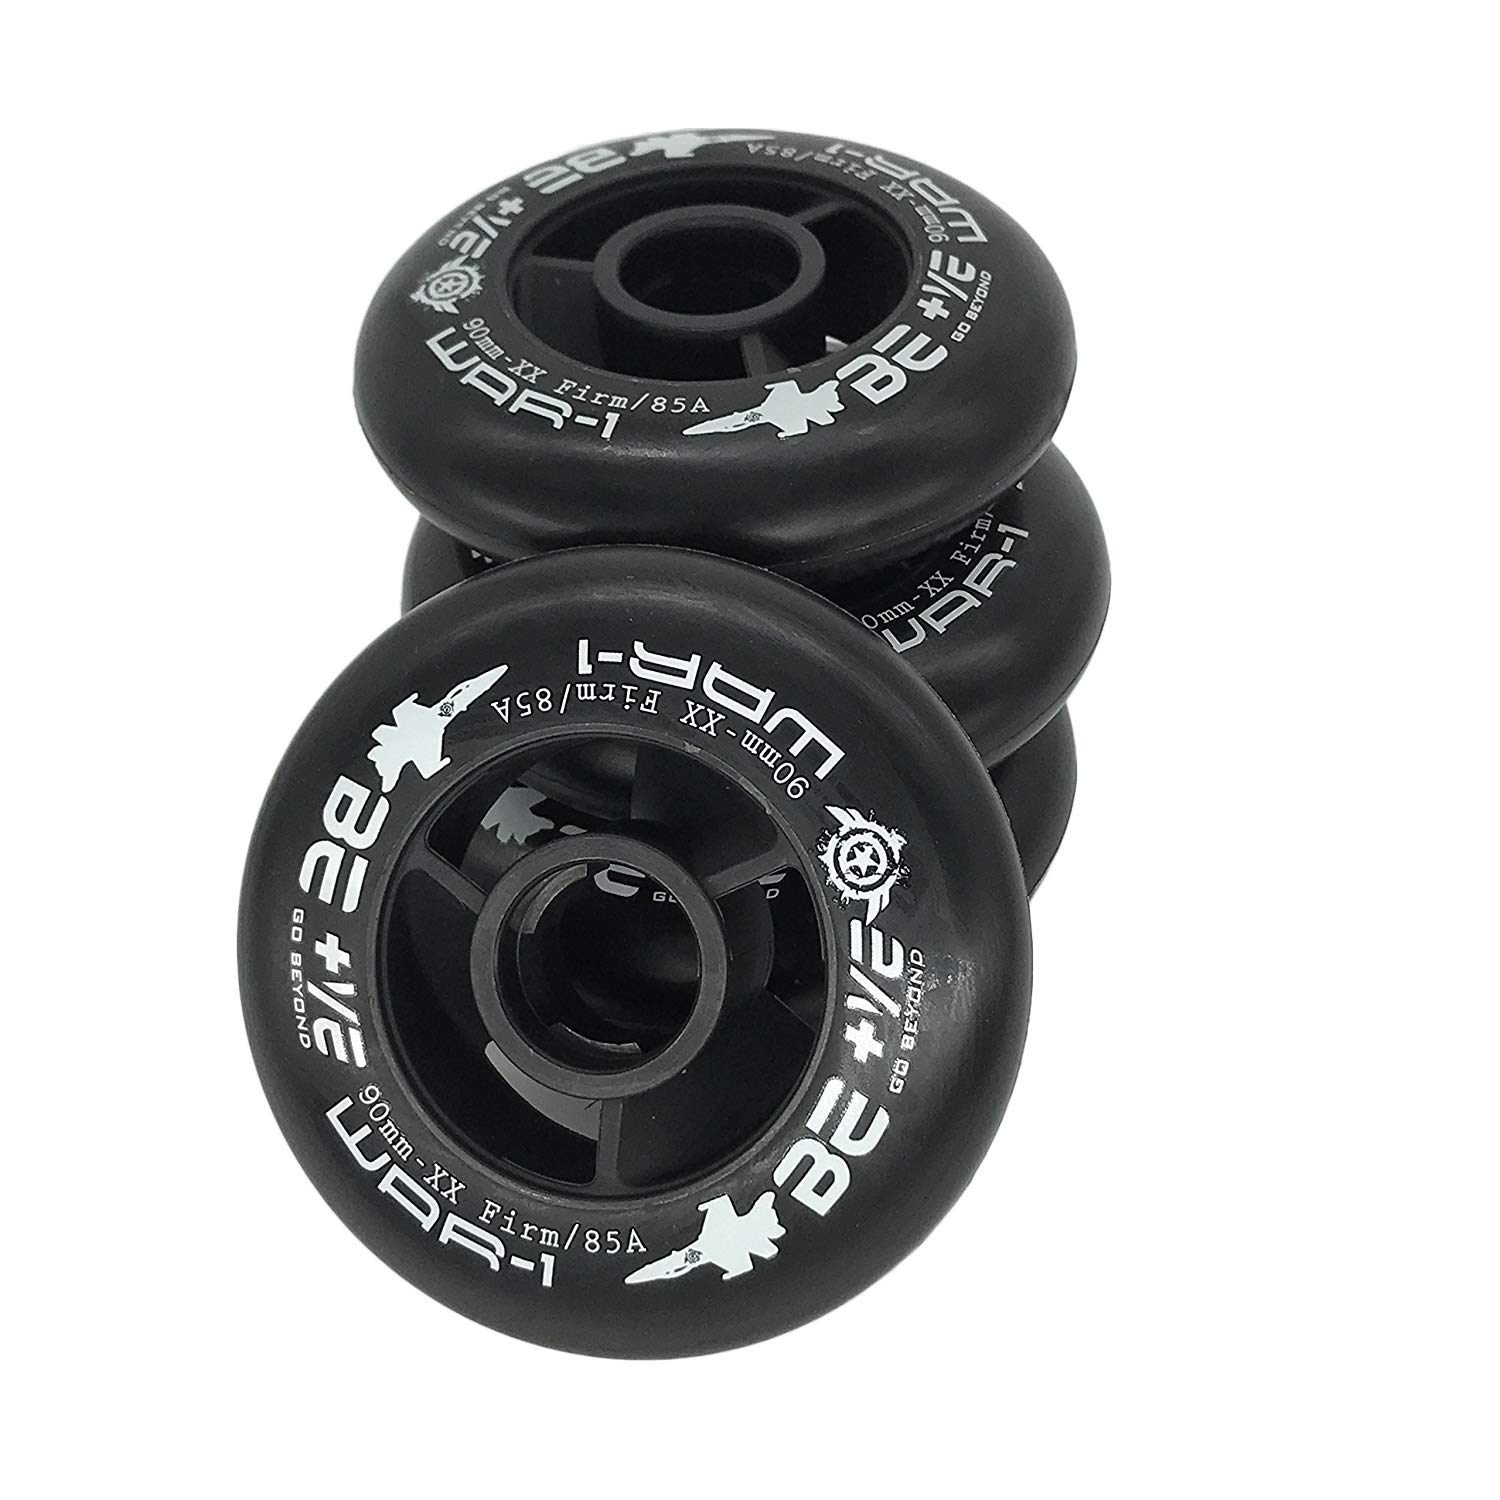 Size 110mm and 100mm and 90mm for Choose JieKeHaiDao 85A SHR PU Inline Speed Skates Replacement Wheels Without Bearings Pack of 4